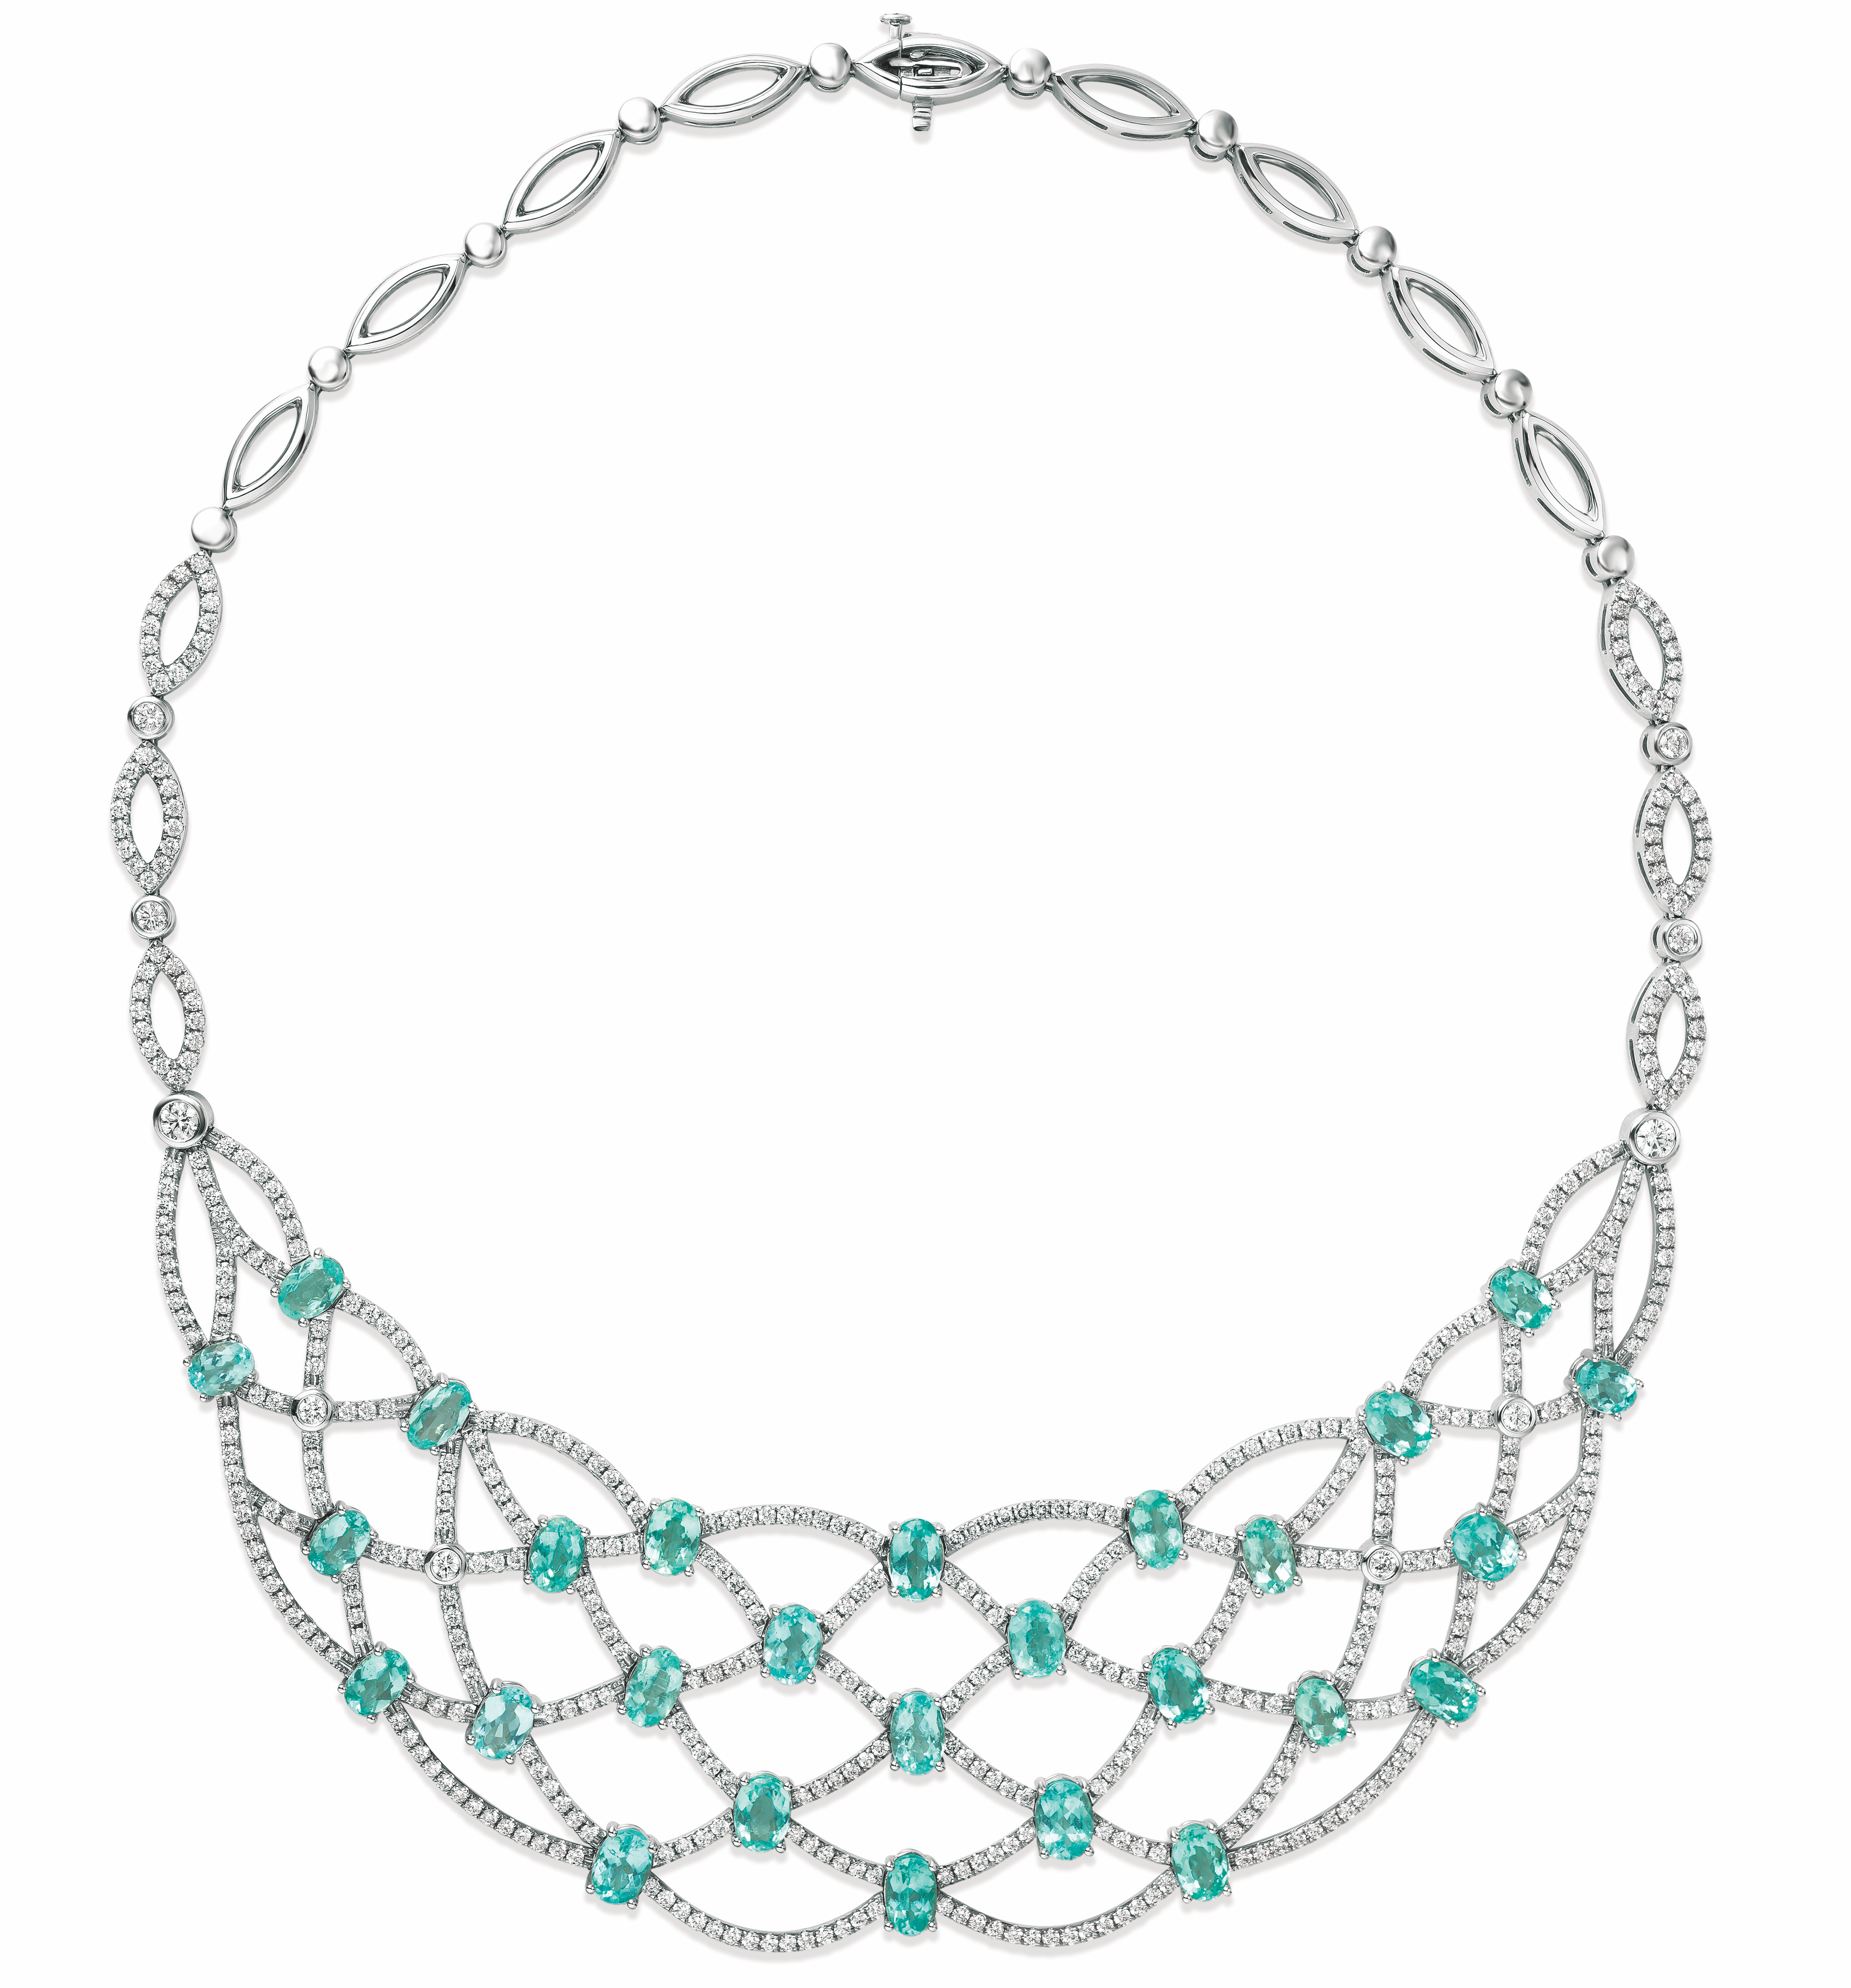 Le Vian Couture Neon Paraiba Tourmaline necklace | JCK On Your Market